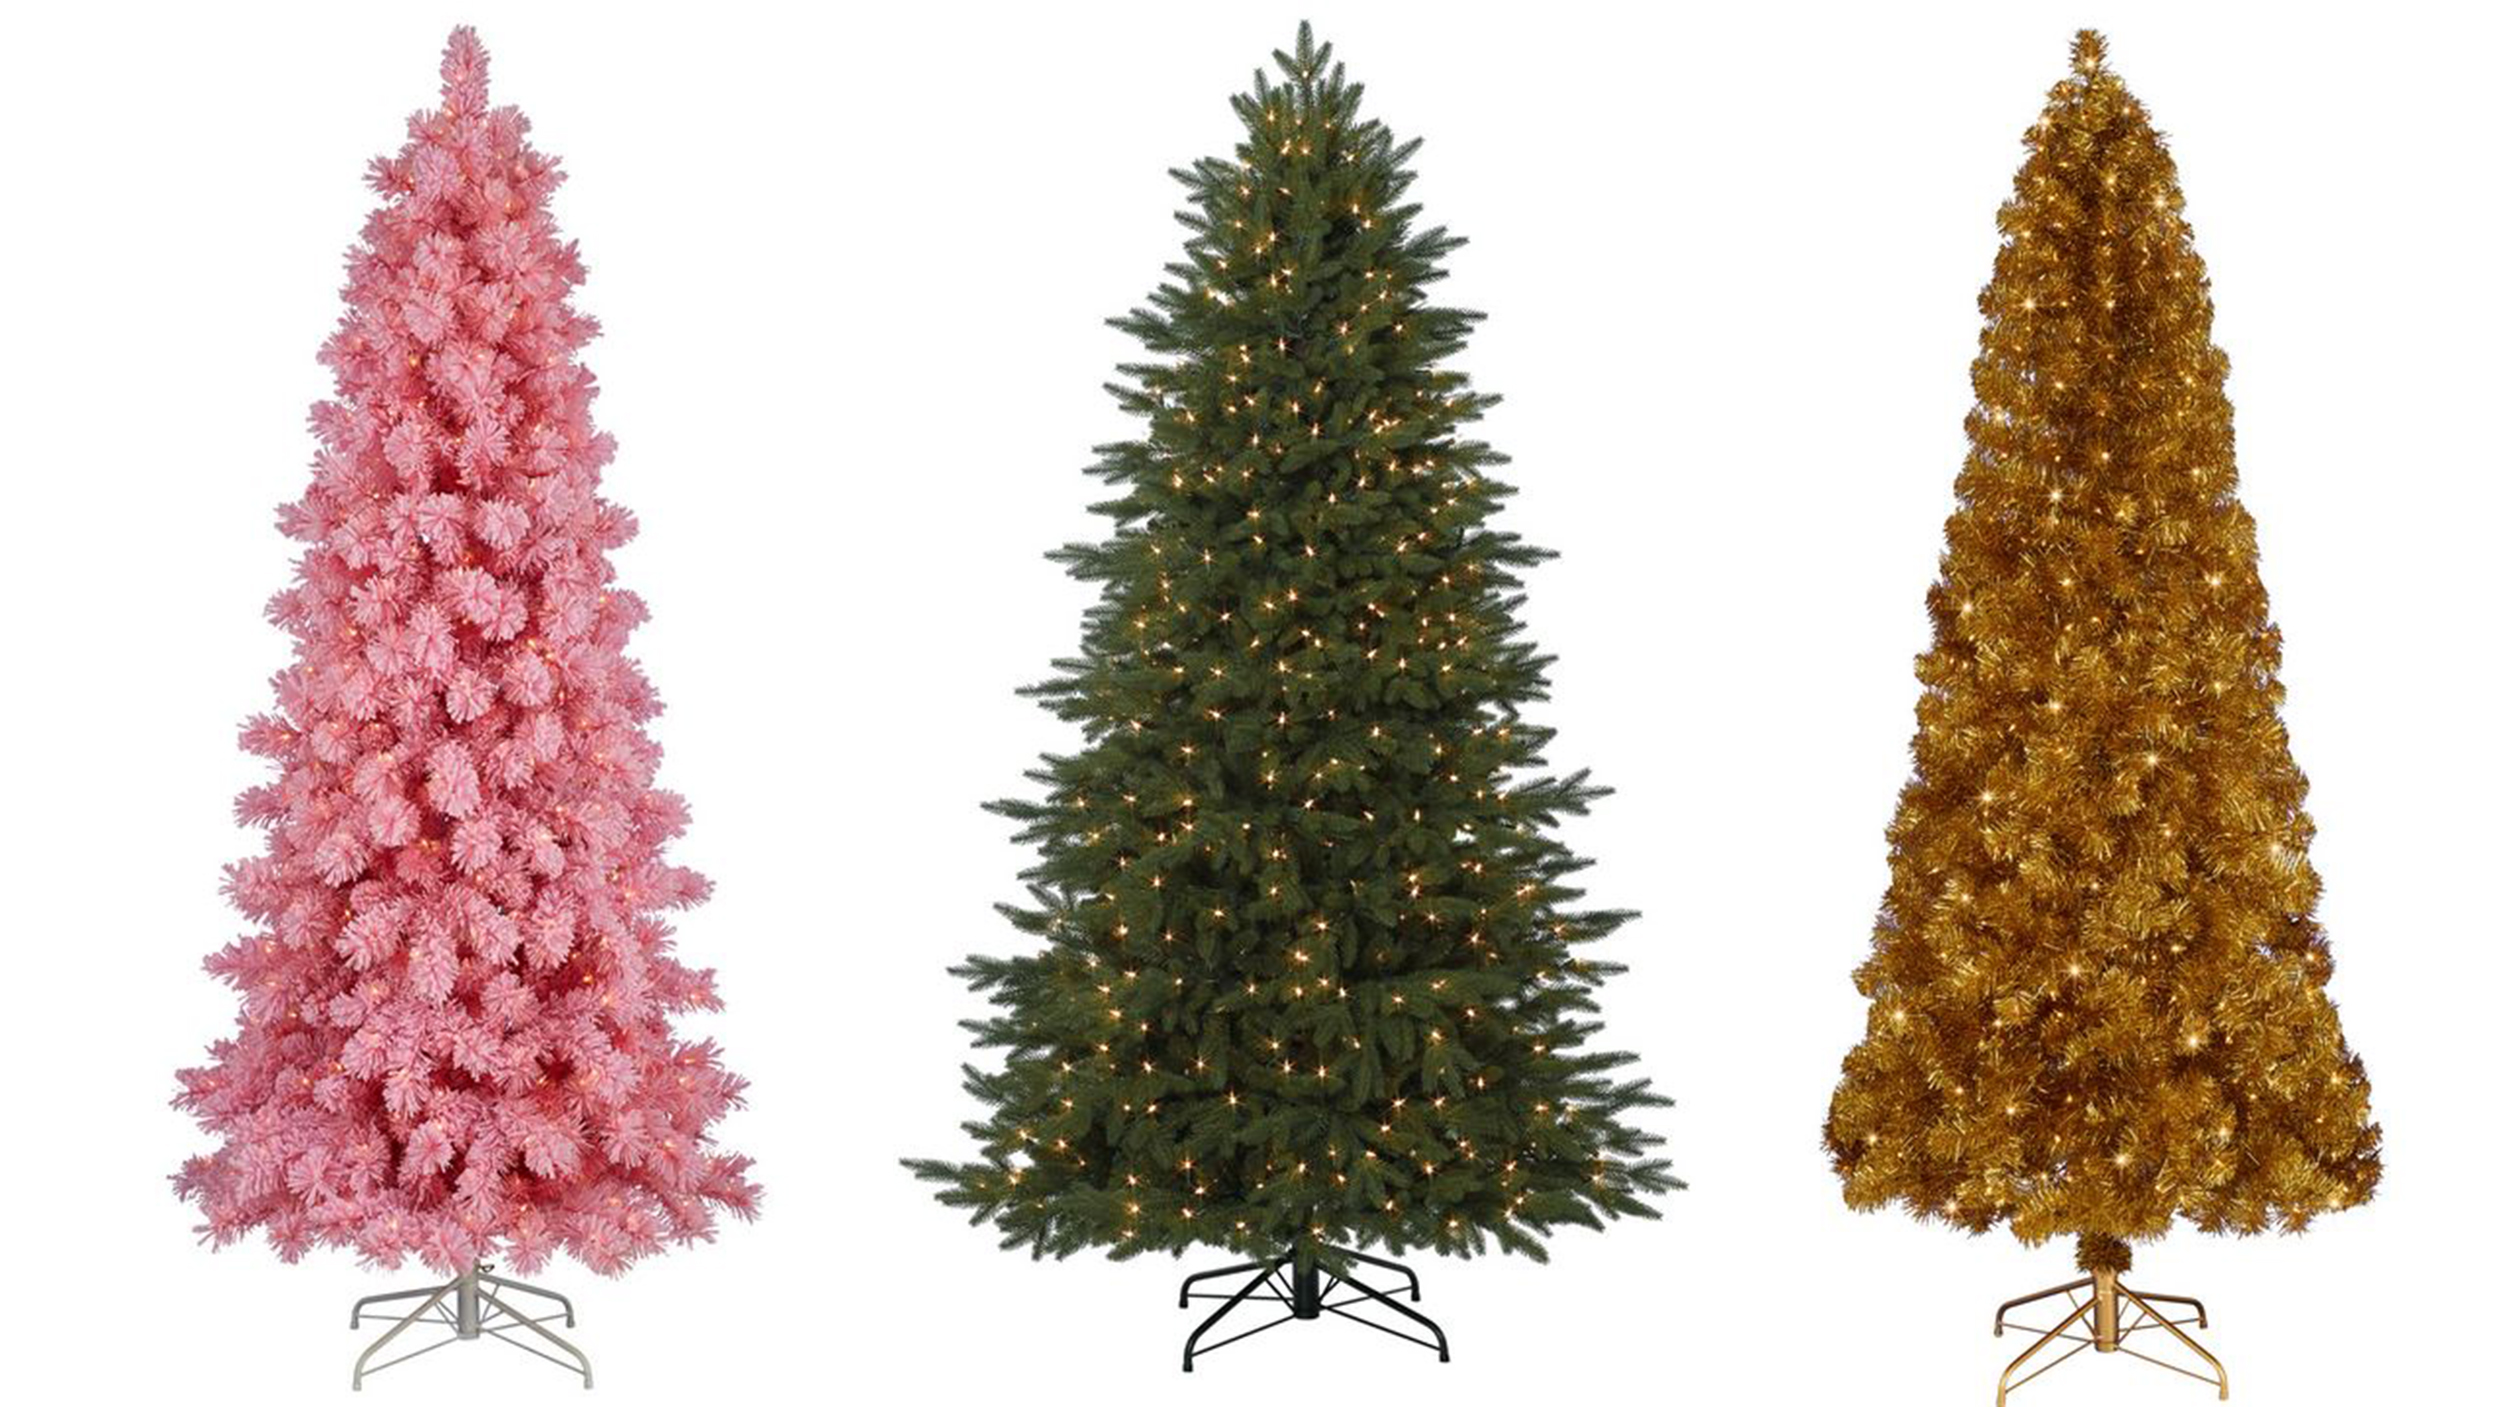 Christmas Decorations: Artificial Christmas Trees That Are